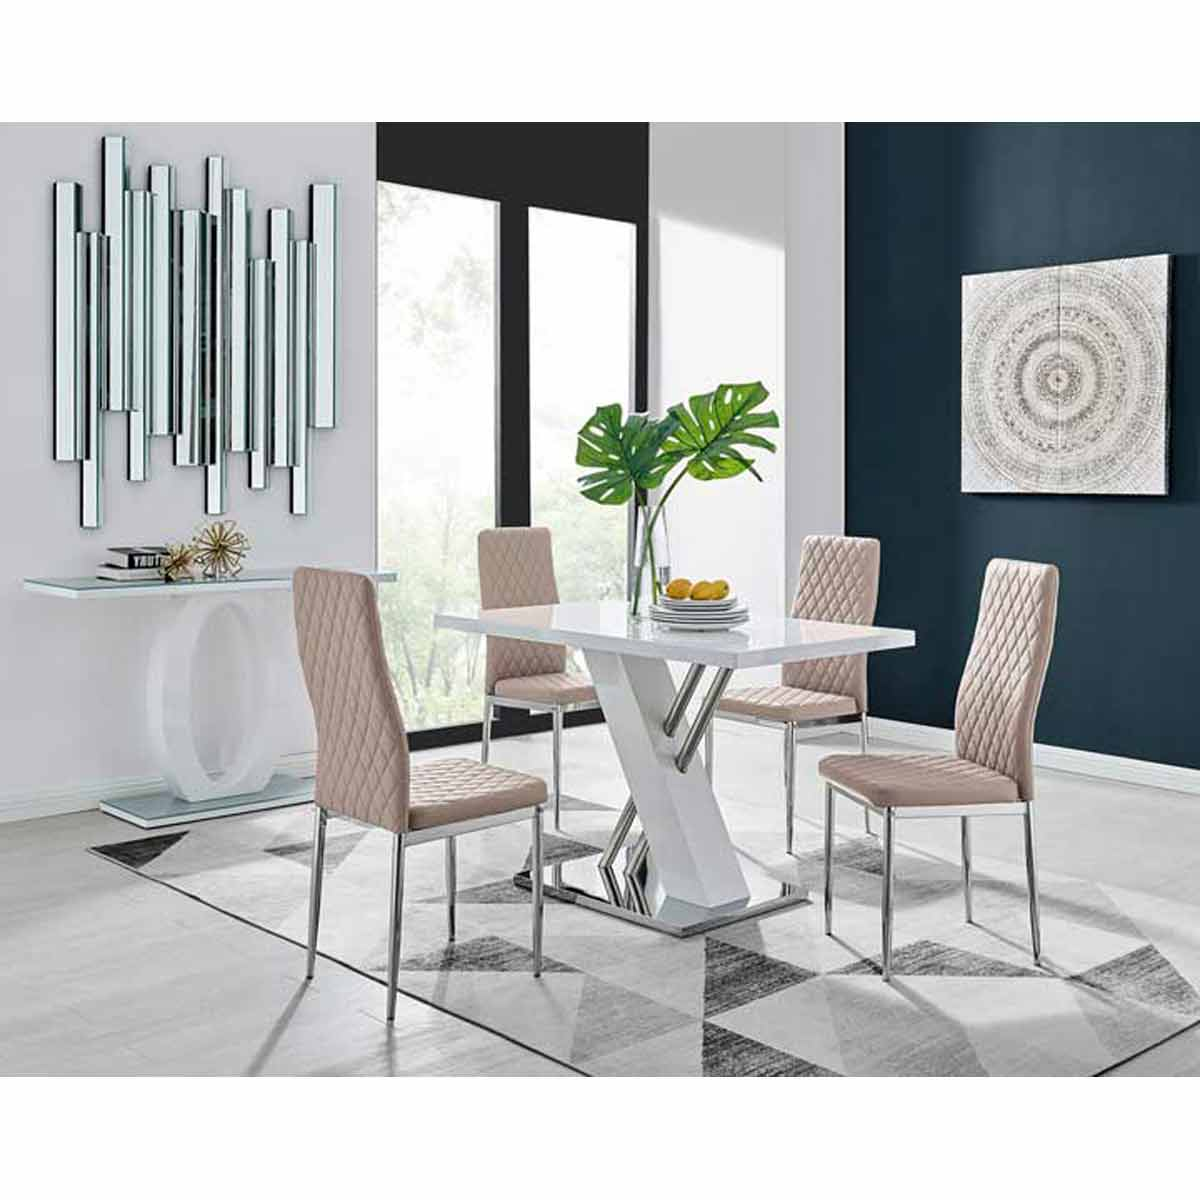 Furniture Box Sorrento 4 White High Gloss And Stainless Steel Dining Table And 4 Cappuccino Grey Milan Chairs Set